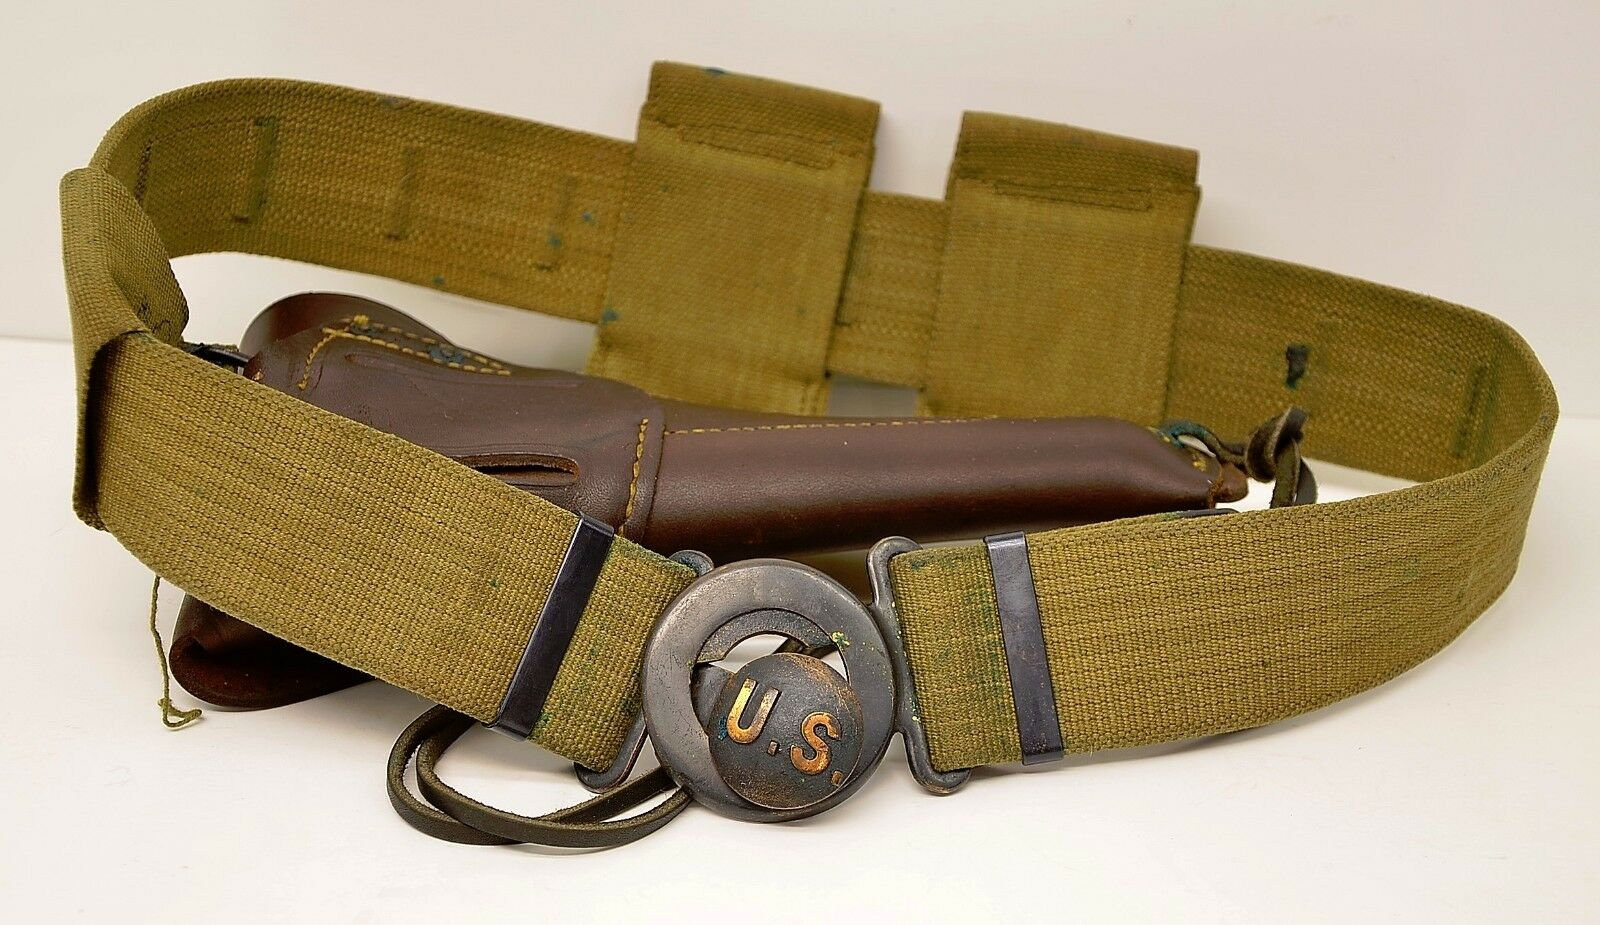 WWI US Mills Woven Cartridge Belt w Brass Buckle, Ammo Pouches, Leather Holster